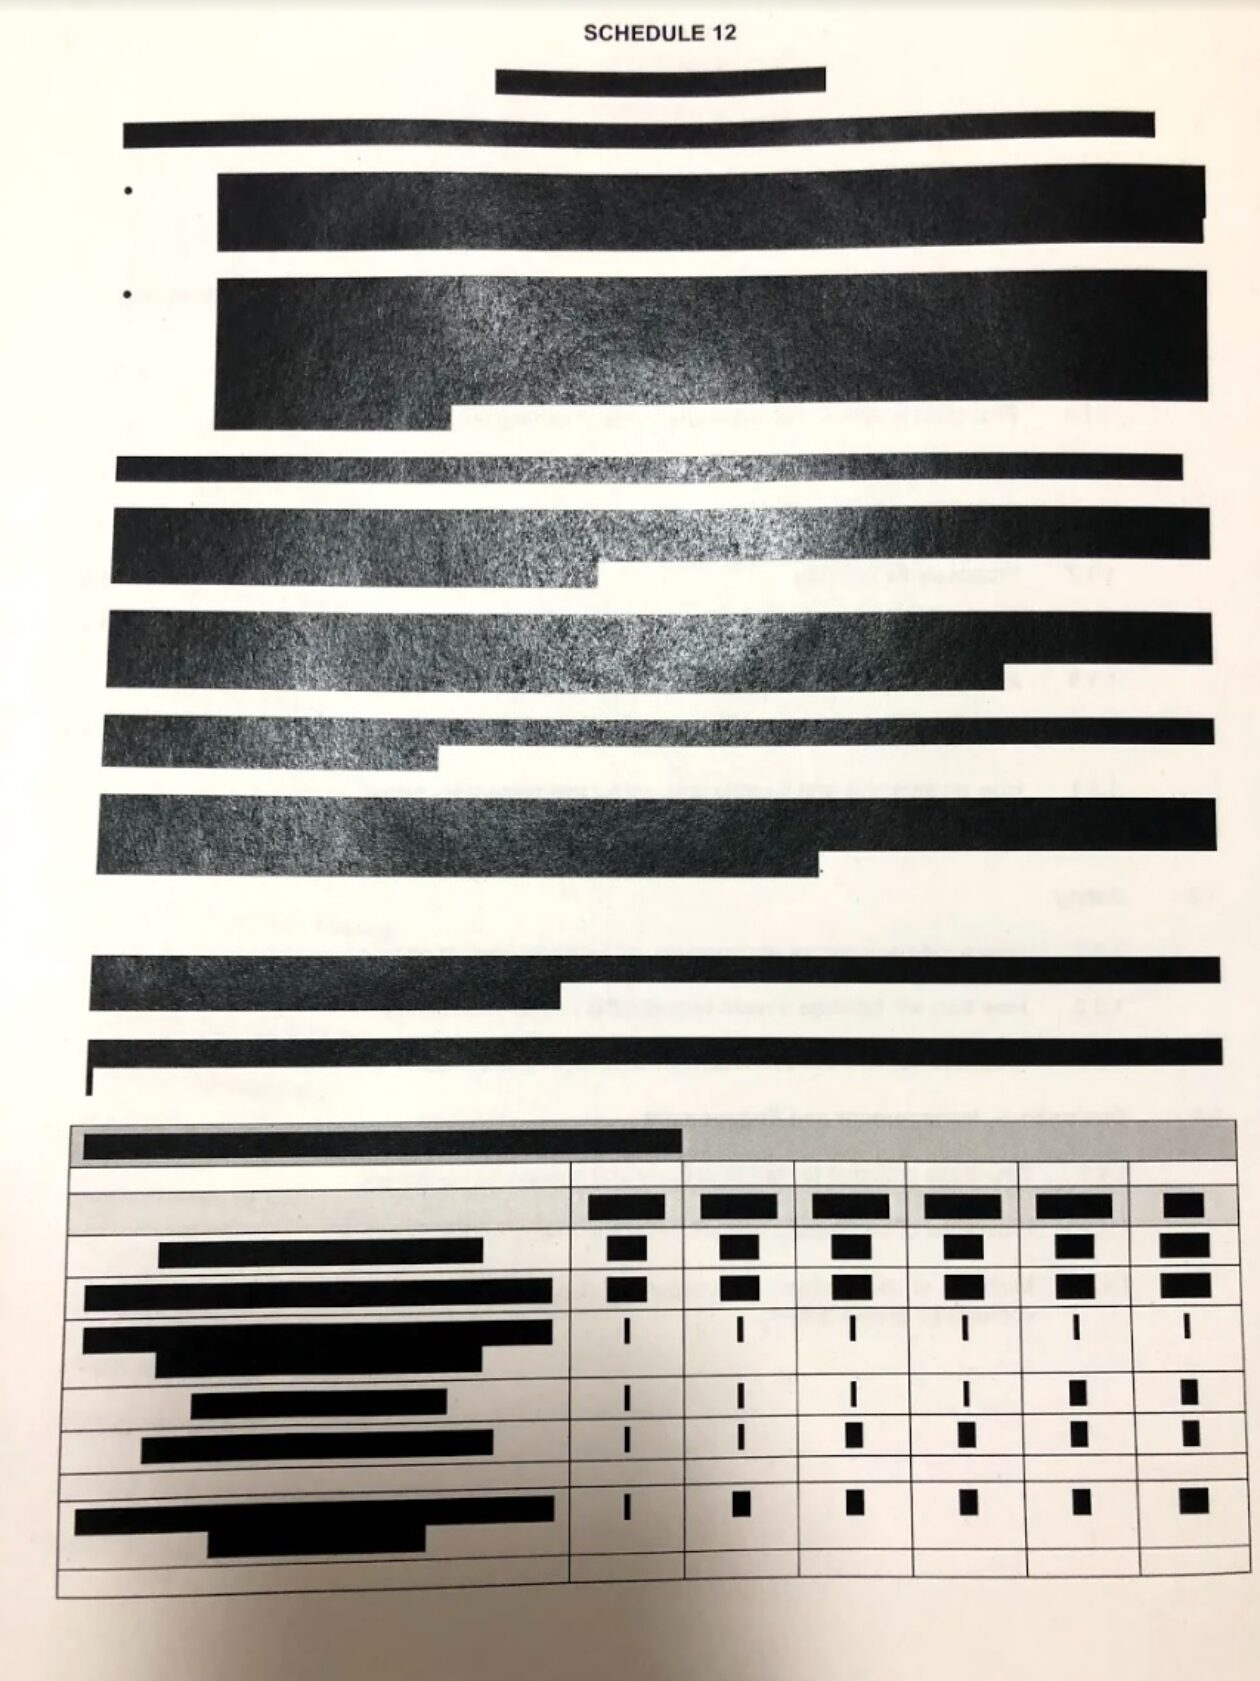 Haringey Council supplied a heavily redacted contract with property developers